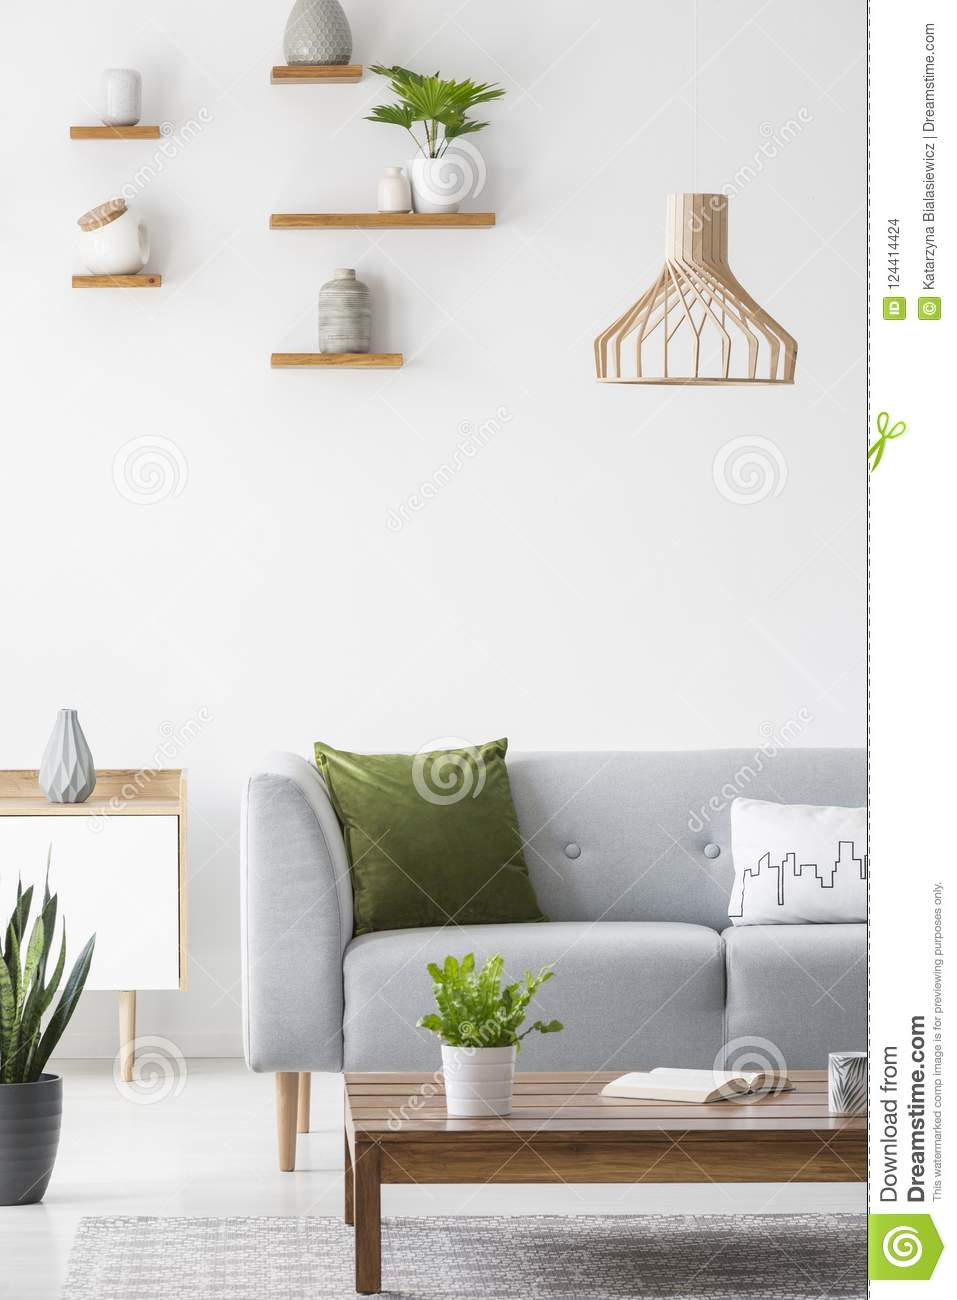 Simple shelves with vases on a white wall and wooden, scandinavian furniture in a bright living room interior with gray decor